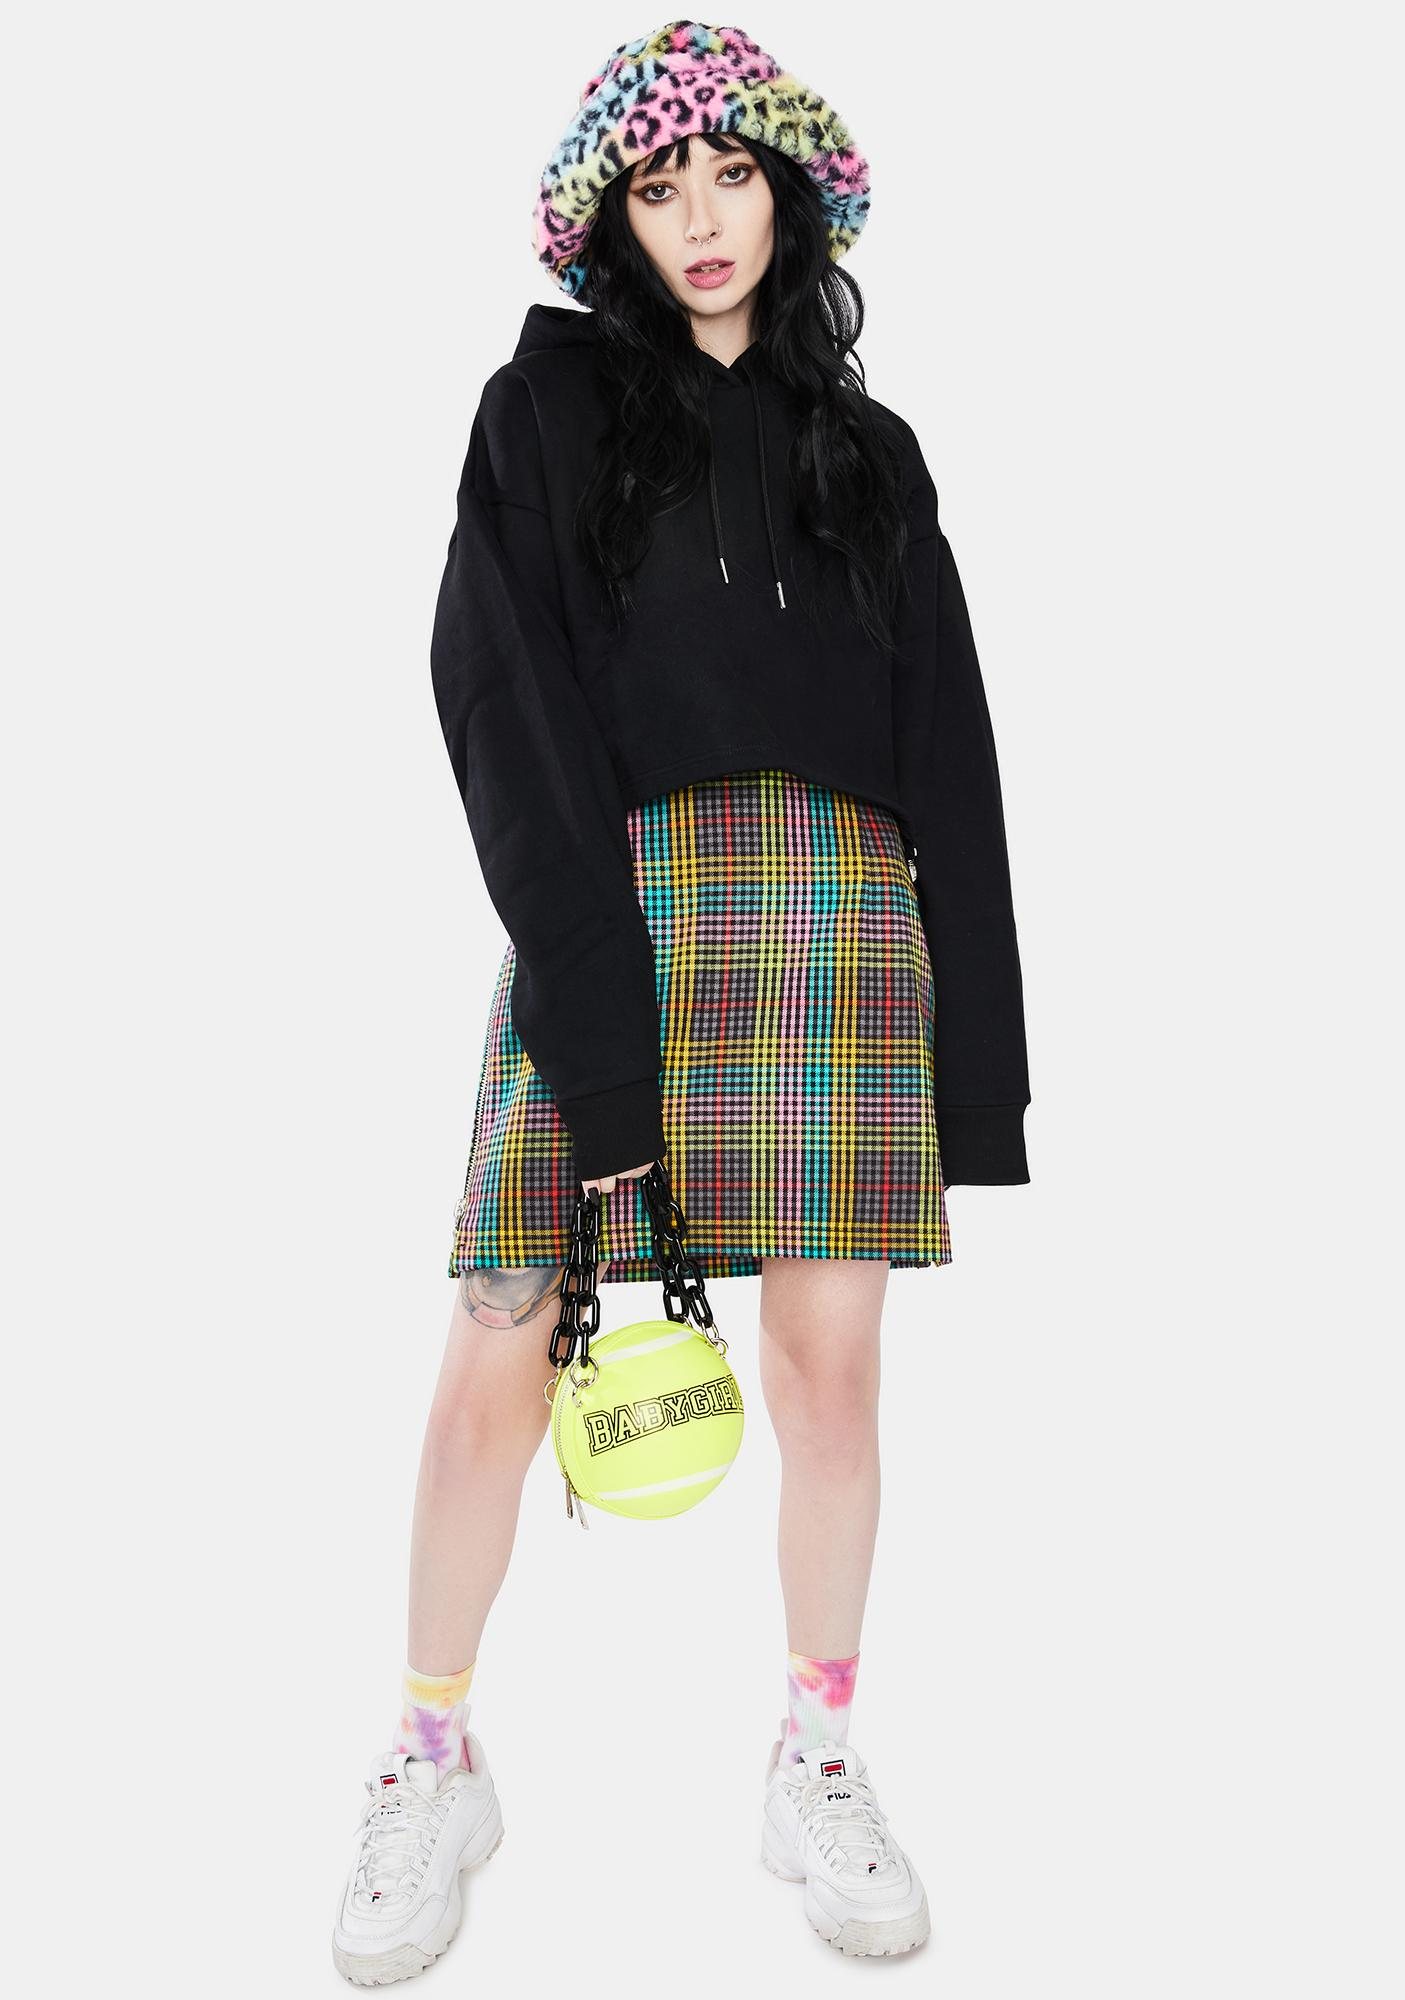 The Ragged Priest Reveal Cropped Hoodie